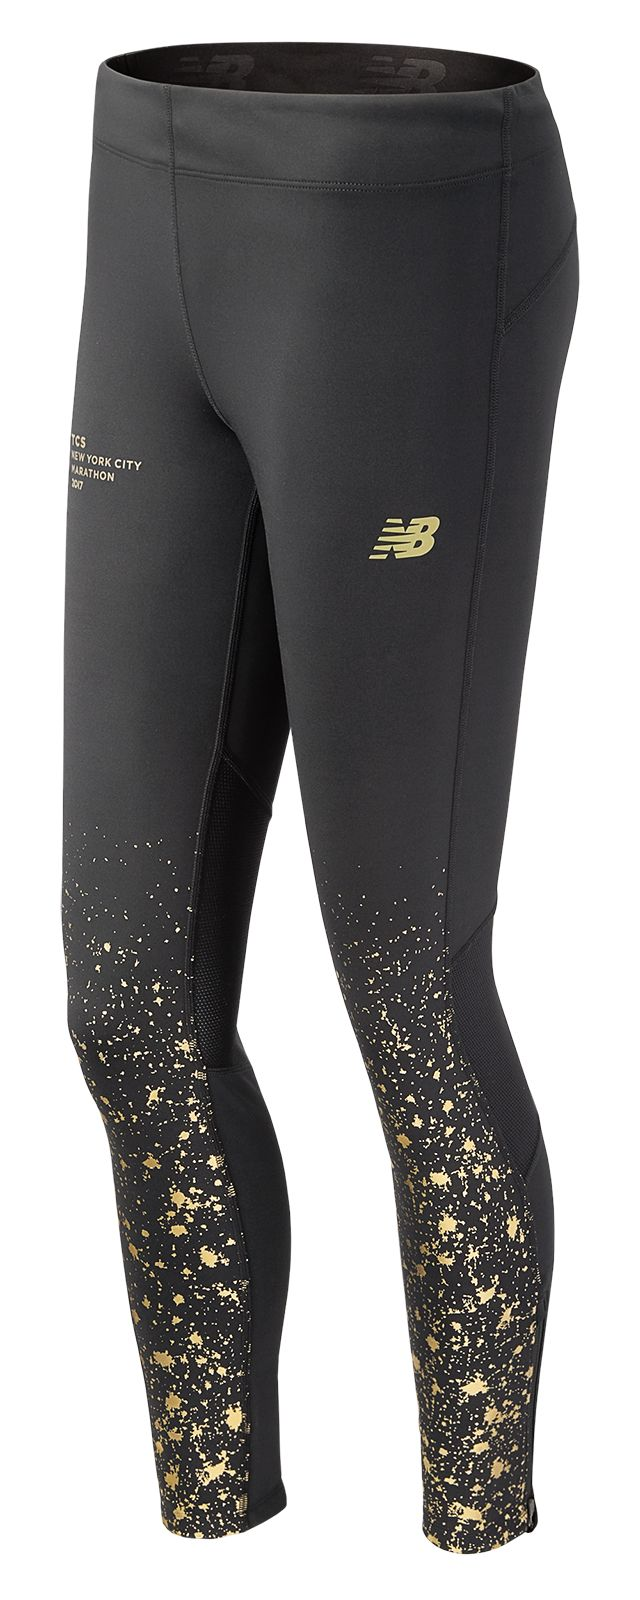 Women's NYC Marathon Impact Premium Printed Tight